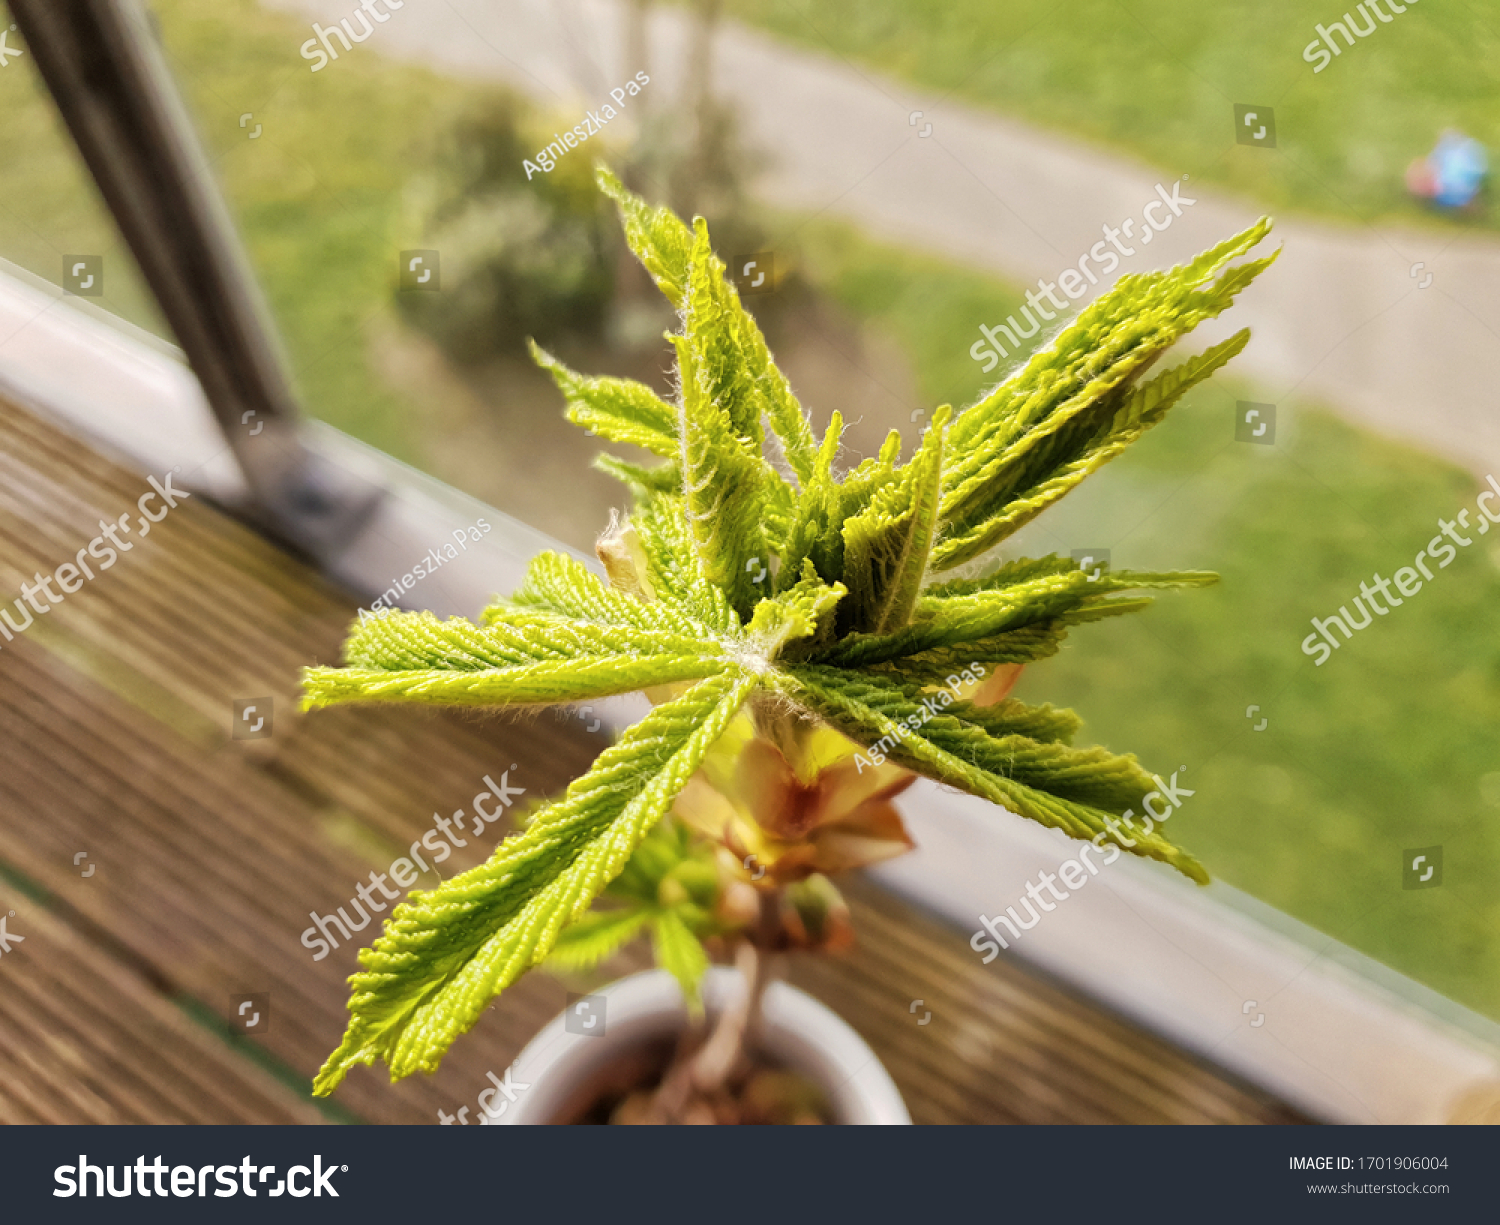 Closeup view of young green chestnut leaves in the sunlight. Chestnut tree in a pot. Creative idea for balcony garden. View from above.